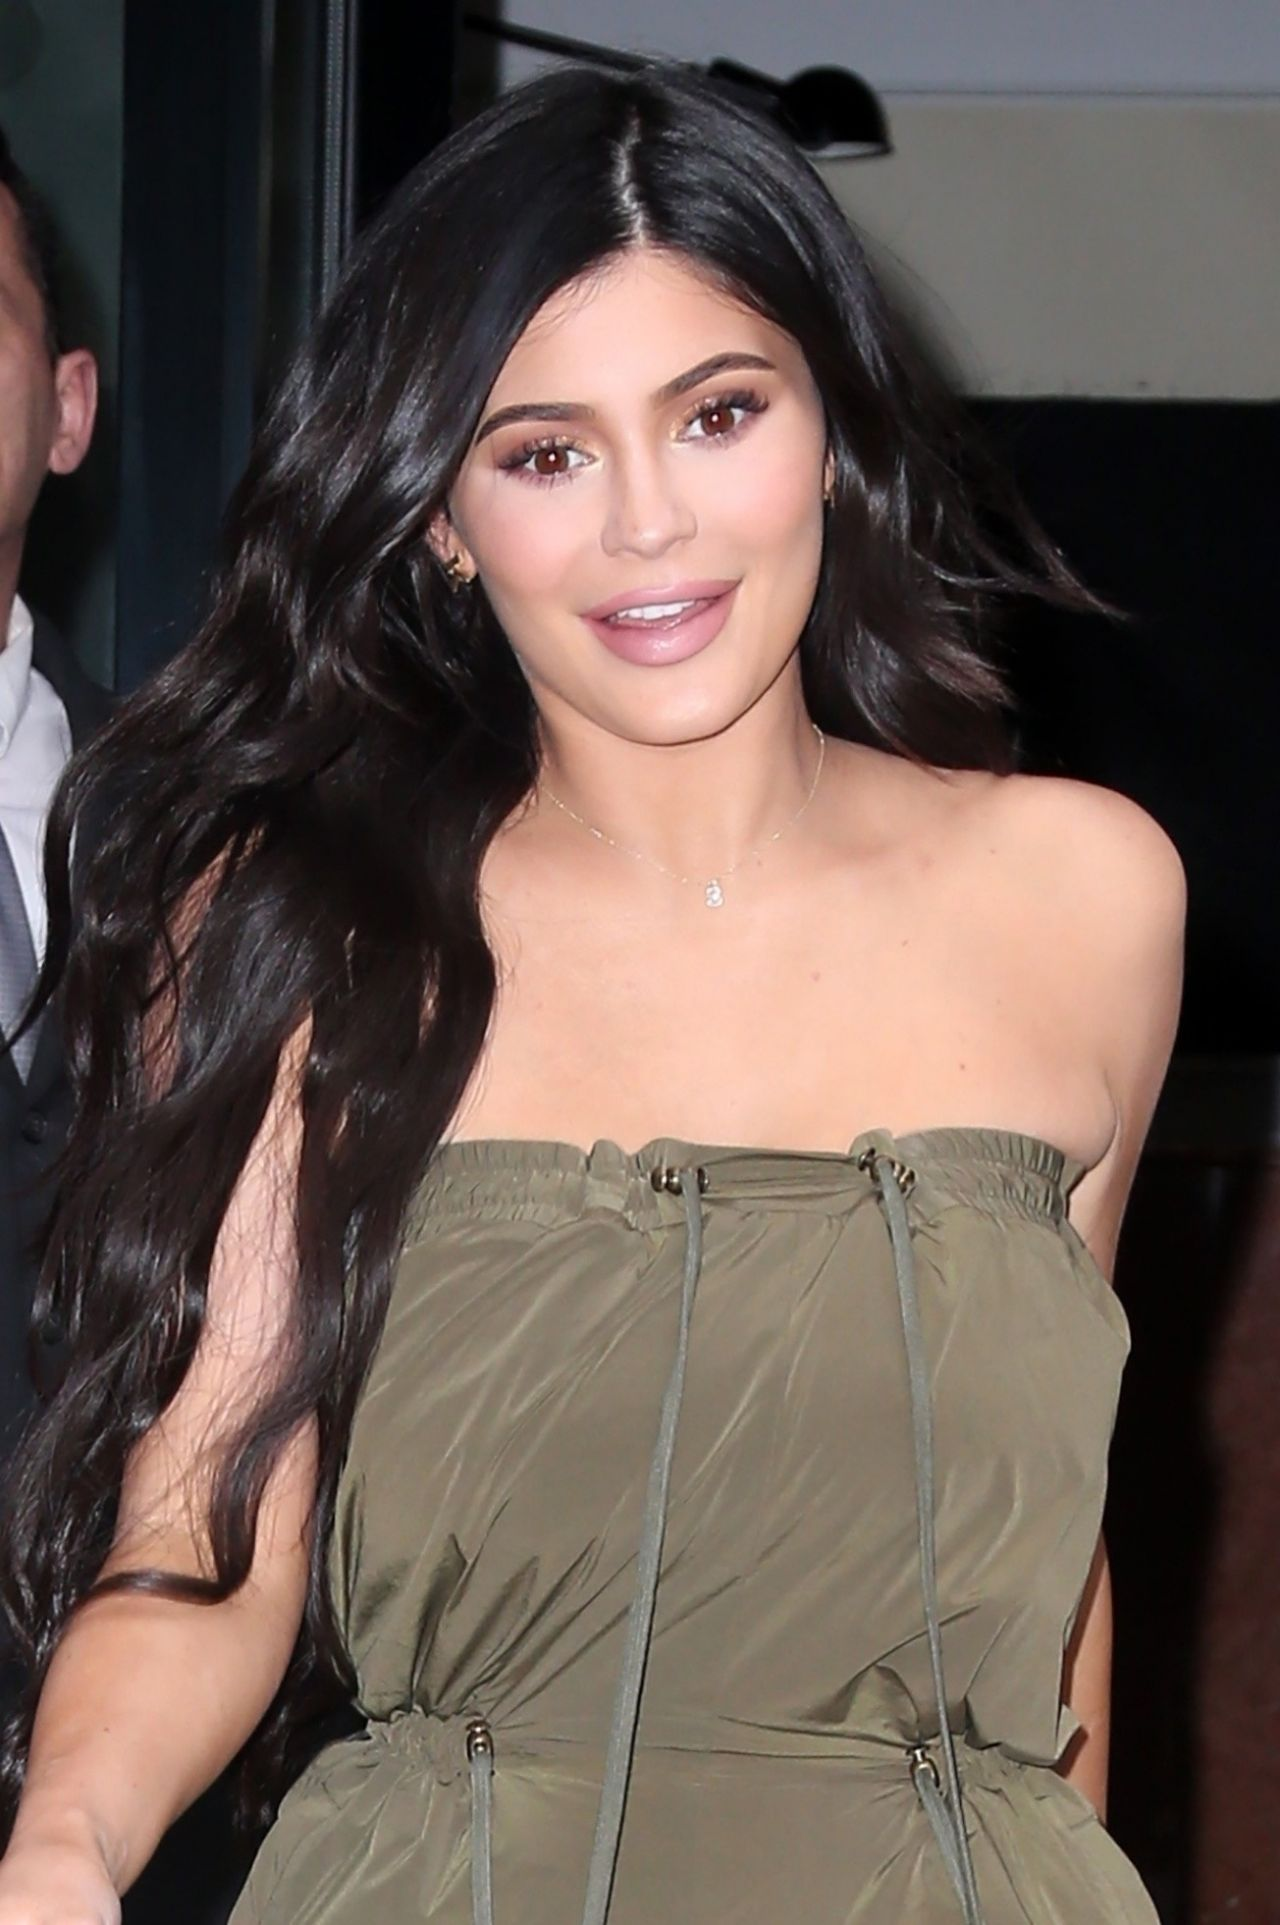 Kylie Jenner Style And Fashion